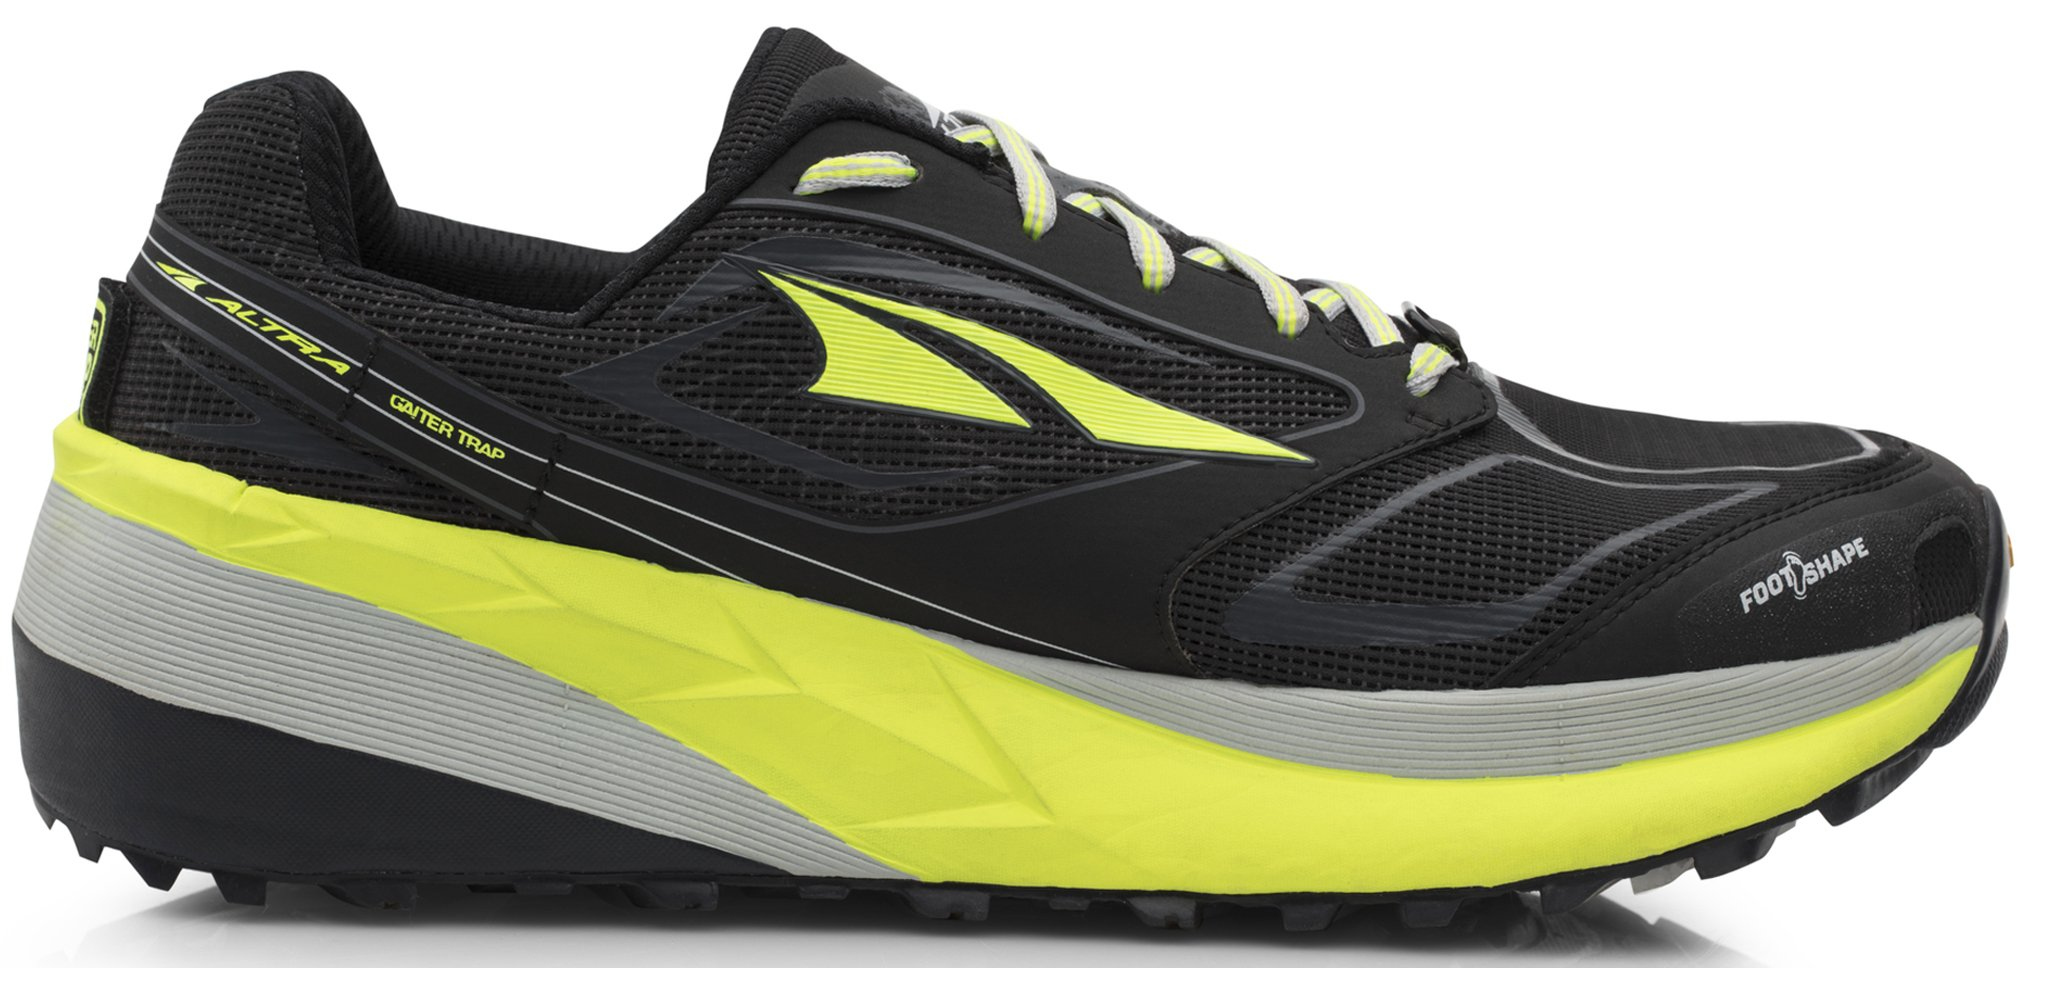 Altra AFM1859F Men's Olympus 3 Running Shoe, Black/Yellow - 11 D(M) US by Altra (Image #1)